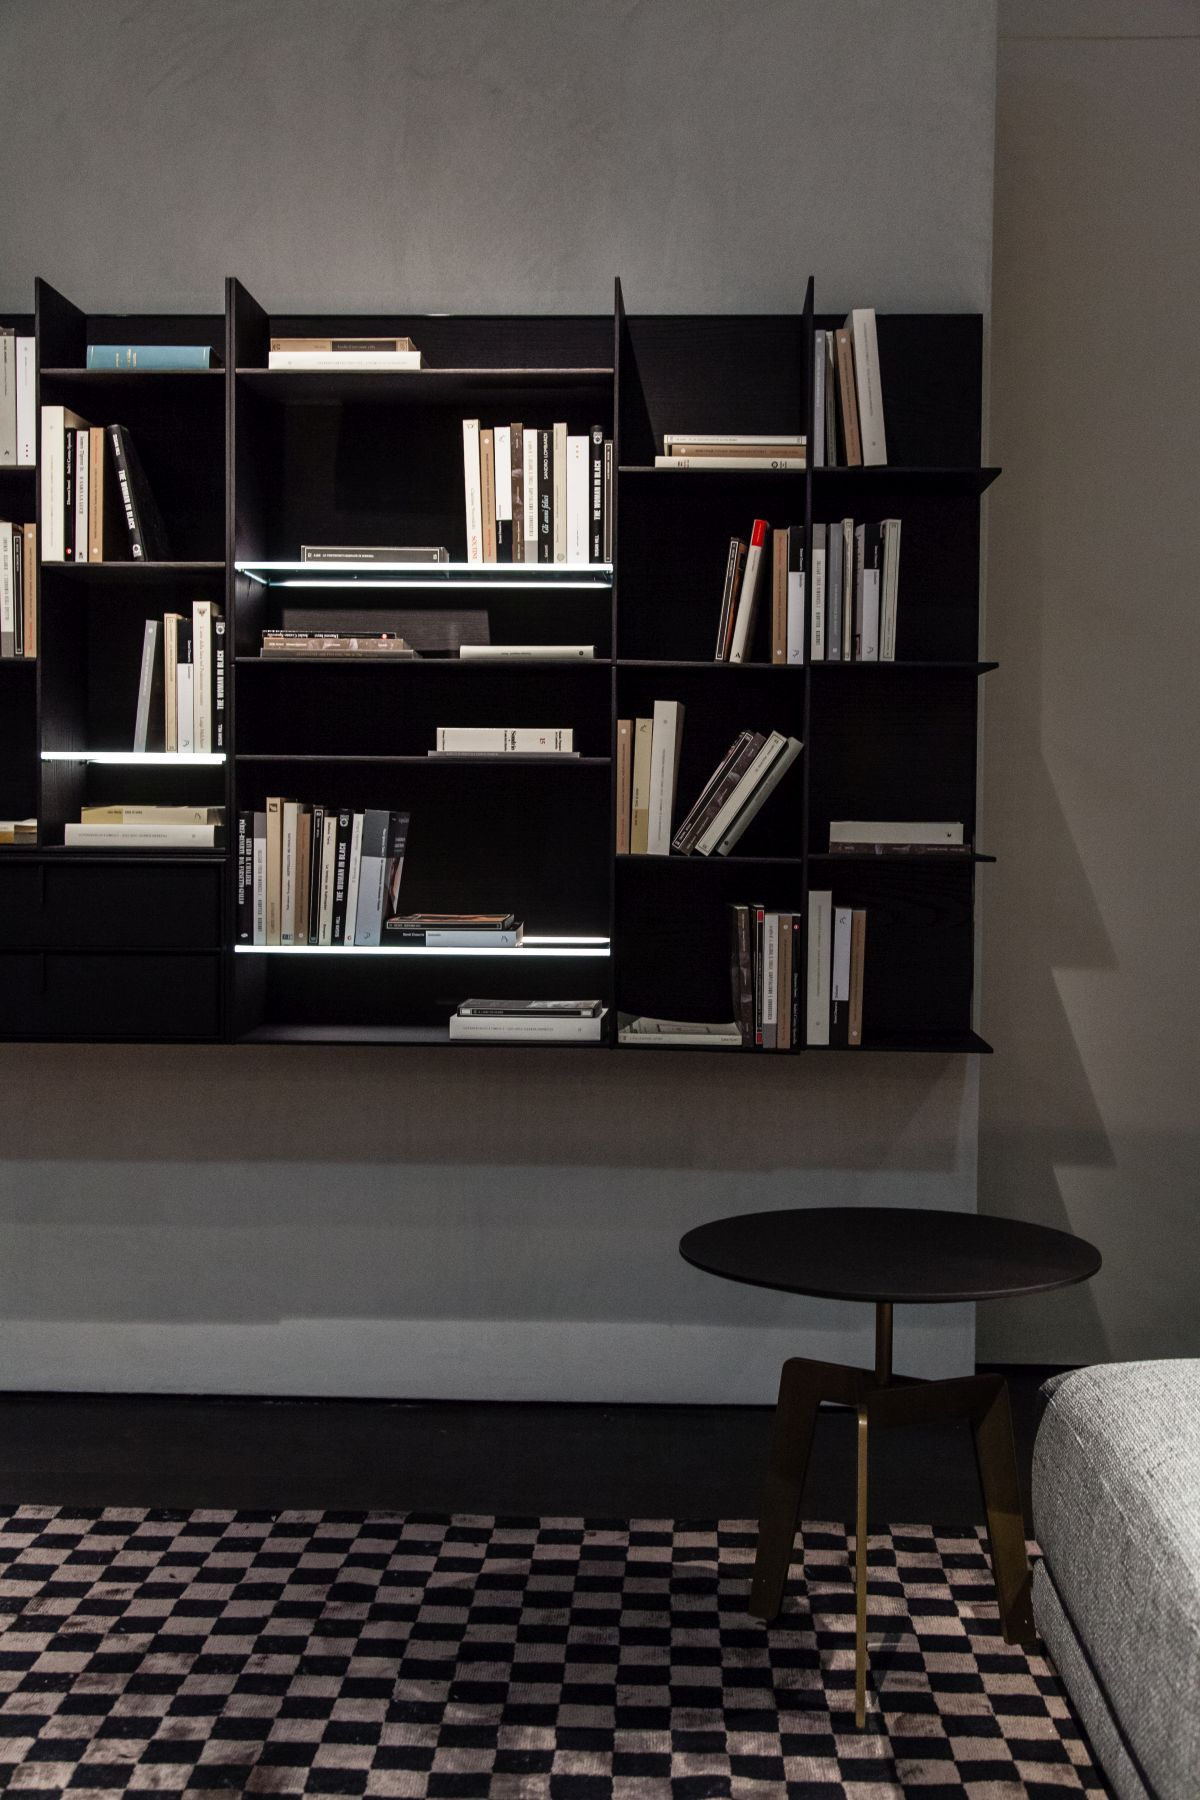 Bookshelves can be of many different kinds and this geometric configuration is just one of the options